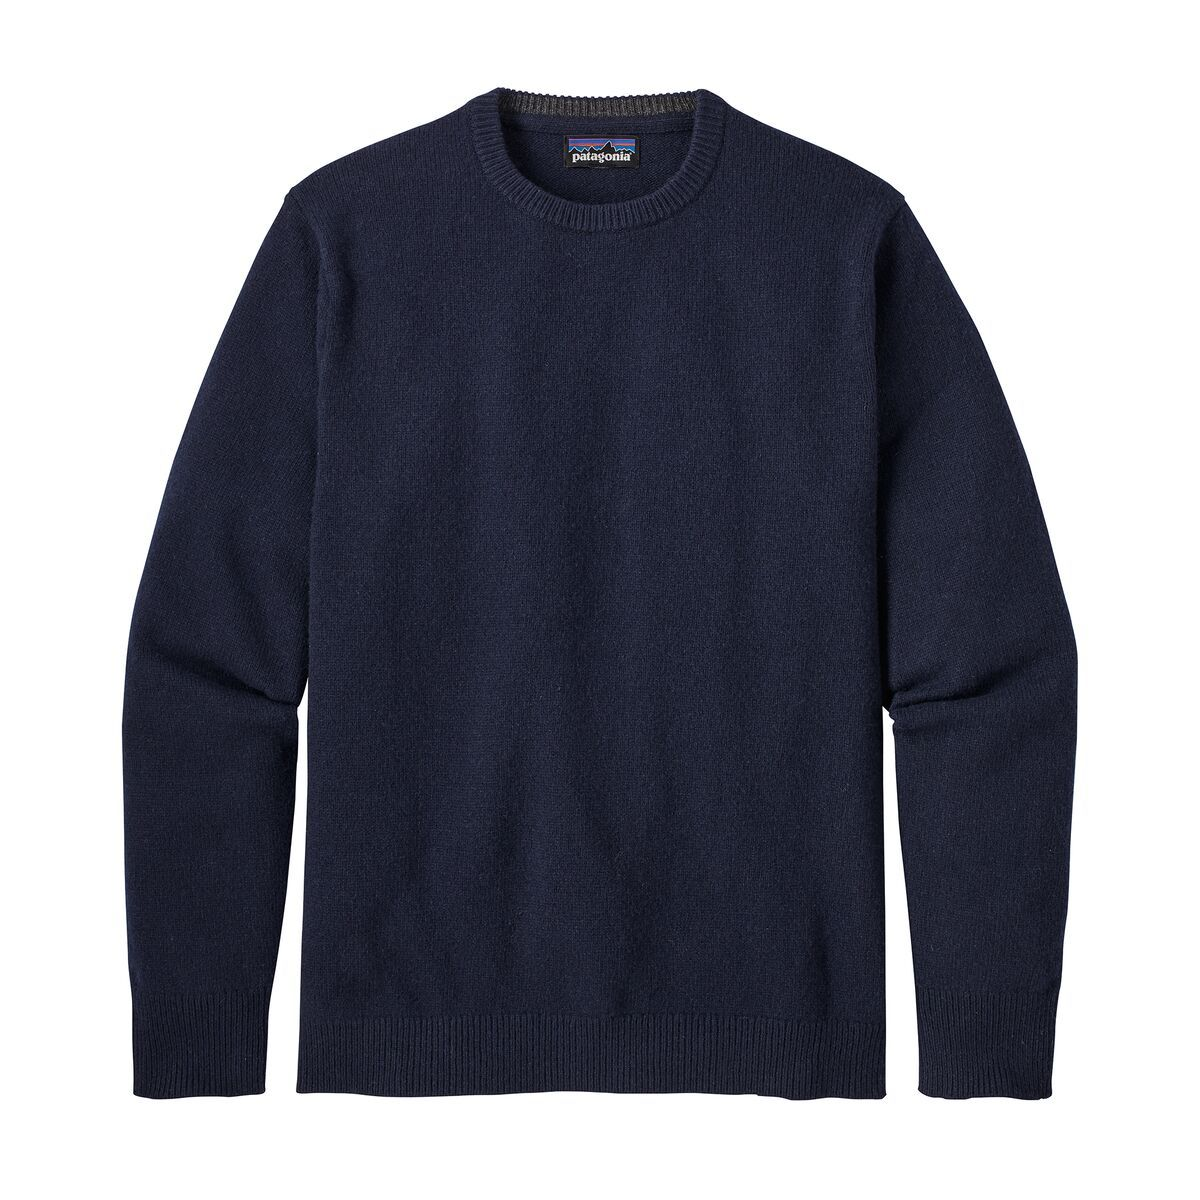 Men's Recycled Cashmere Crewneck Sweater in 2019